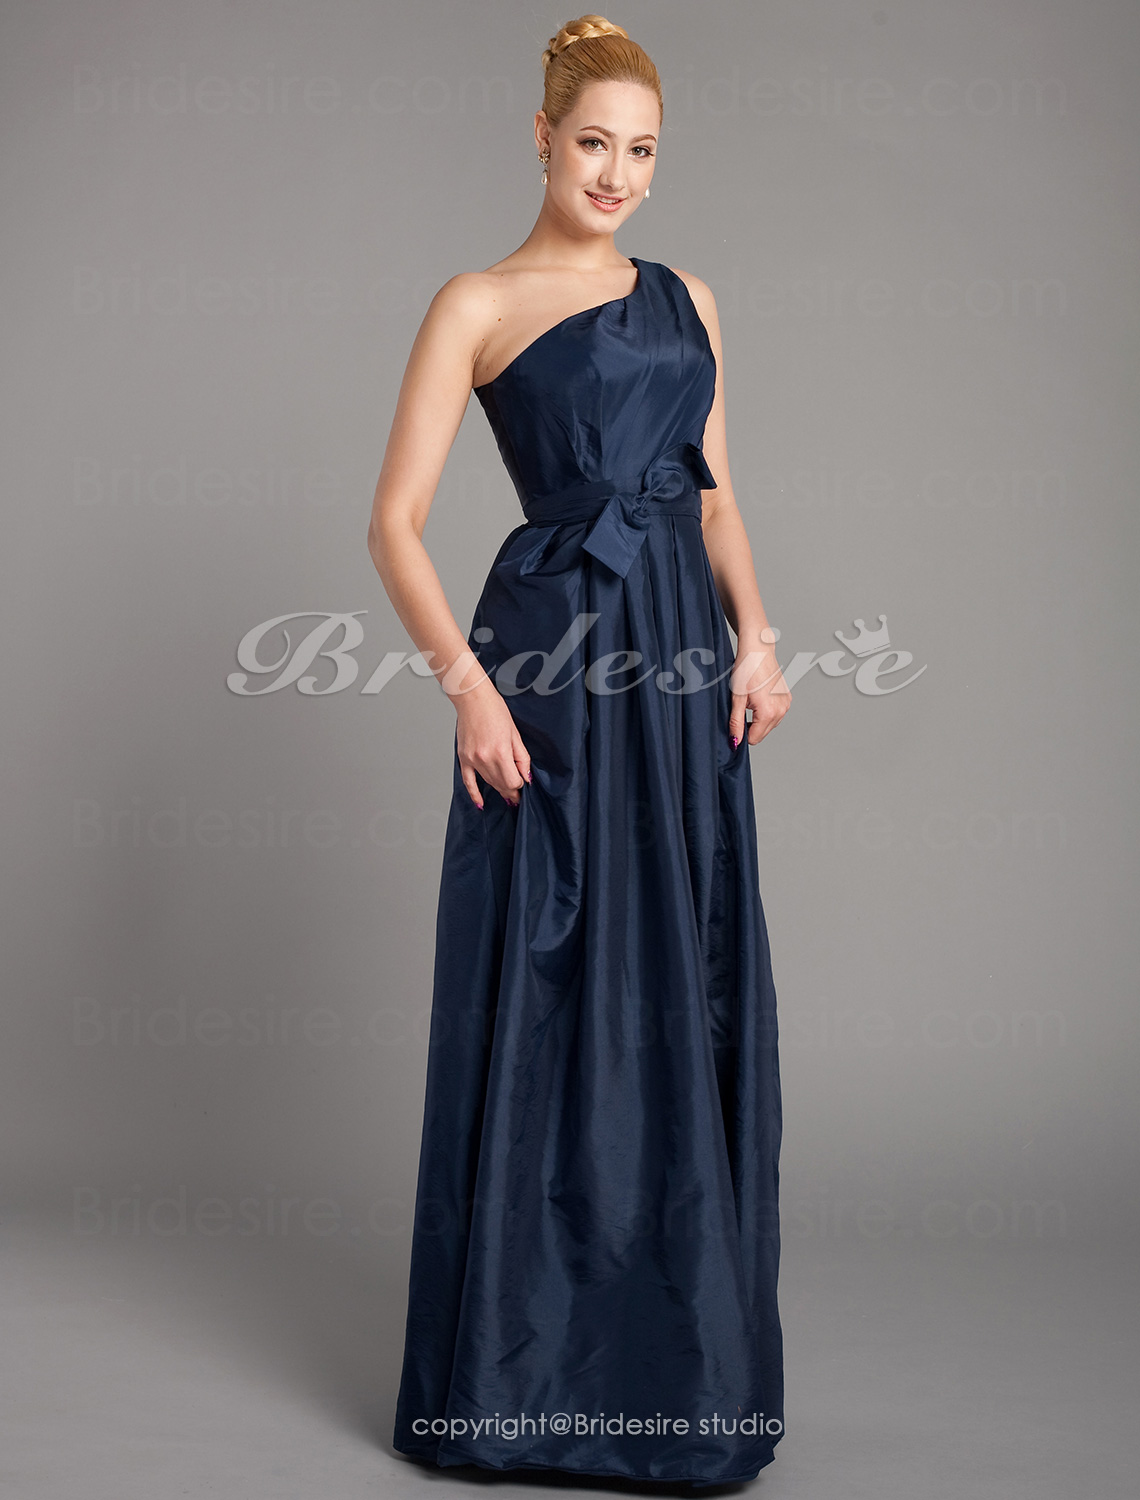 A-line Taffeta Floor-length One Shoulder Mother of the Bride Dress With Bow